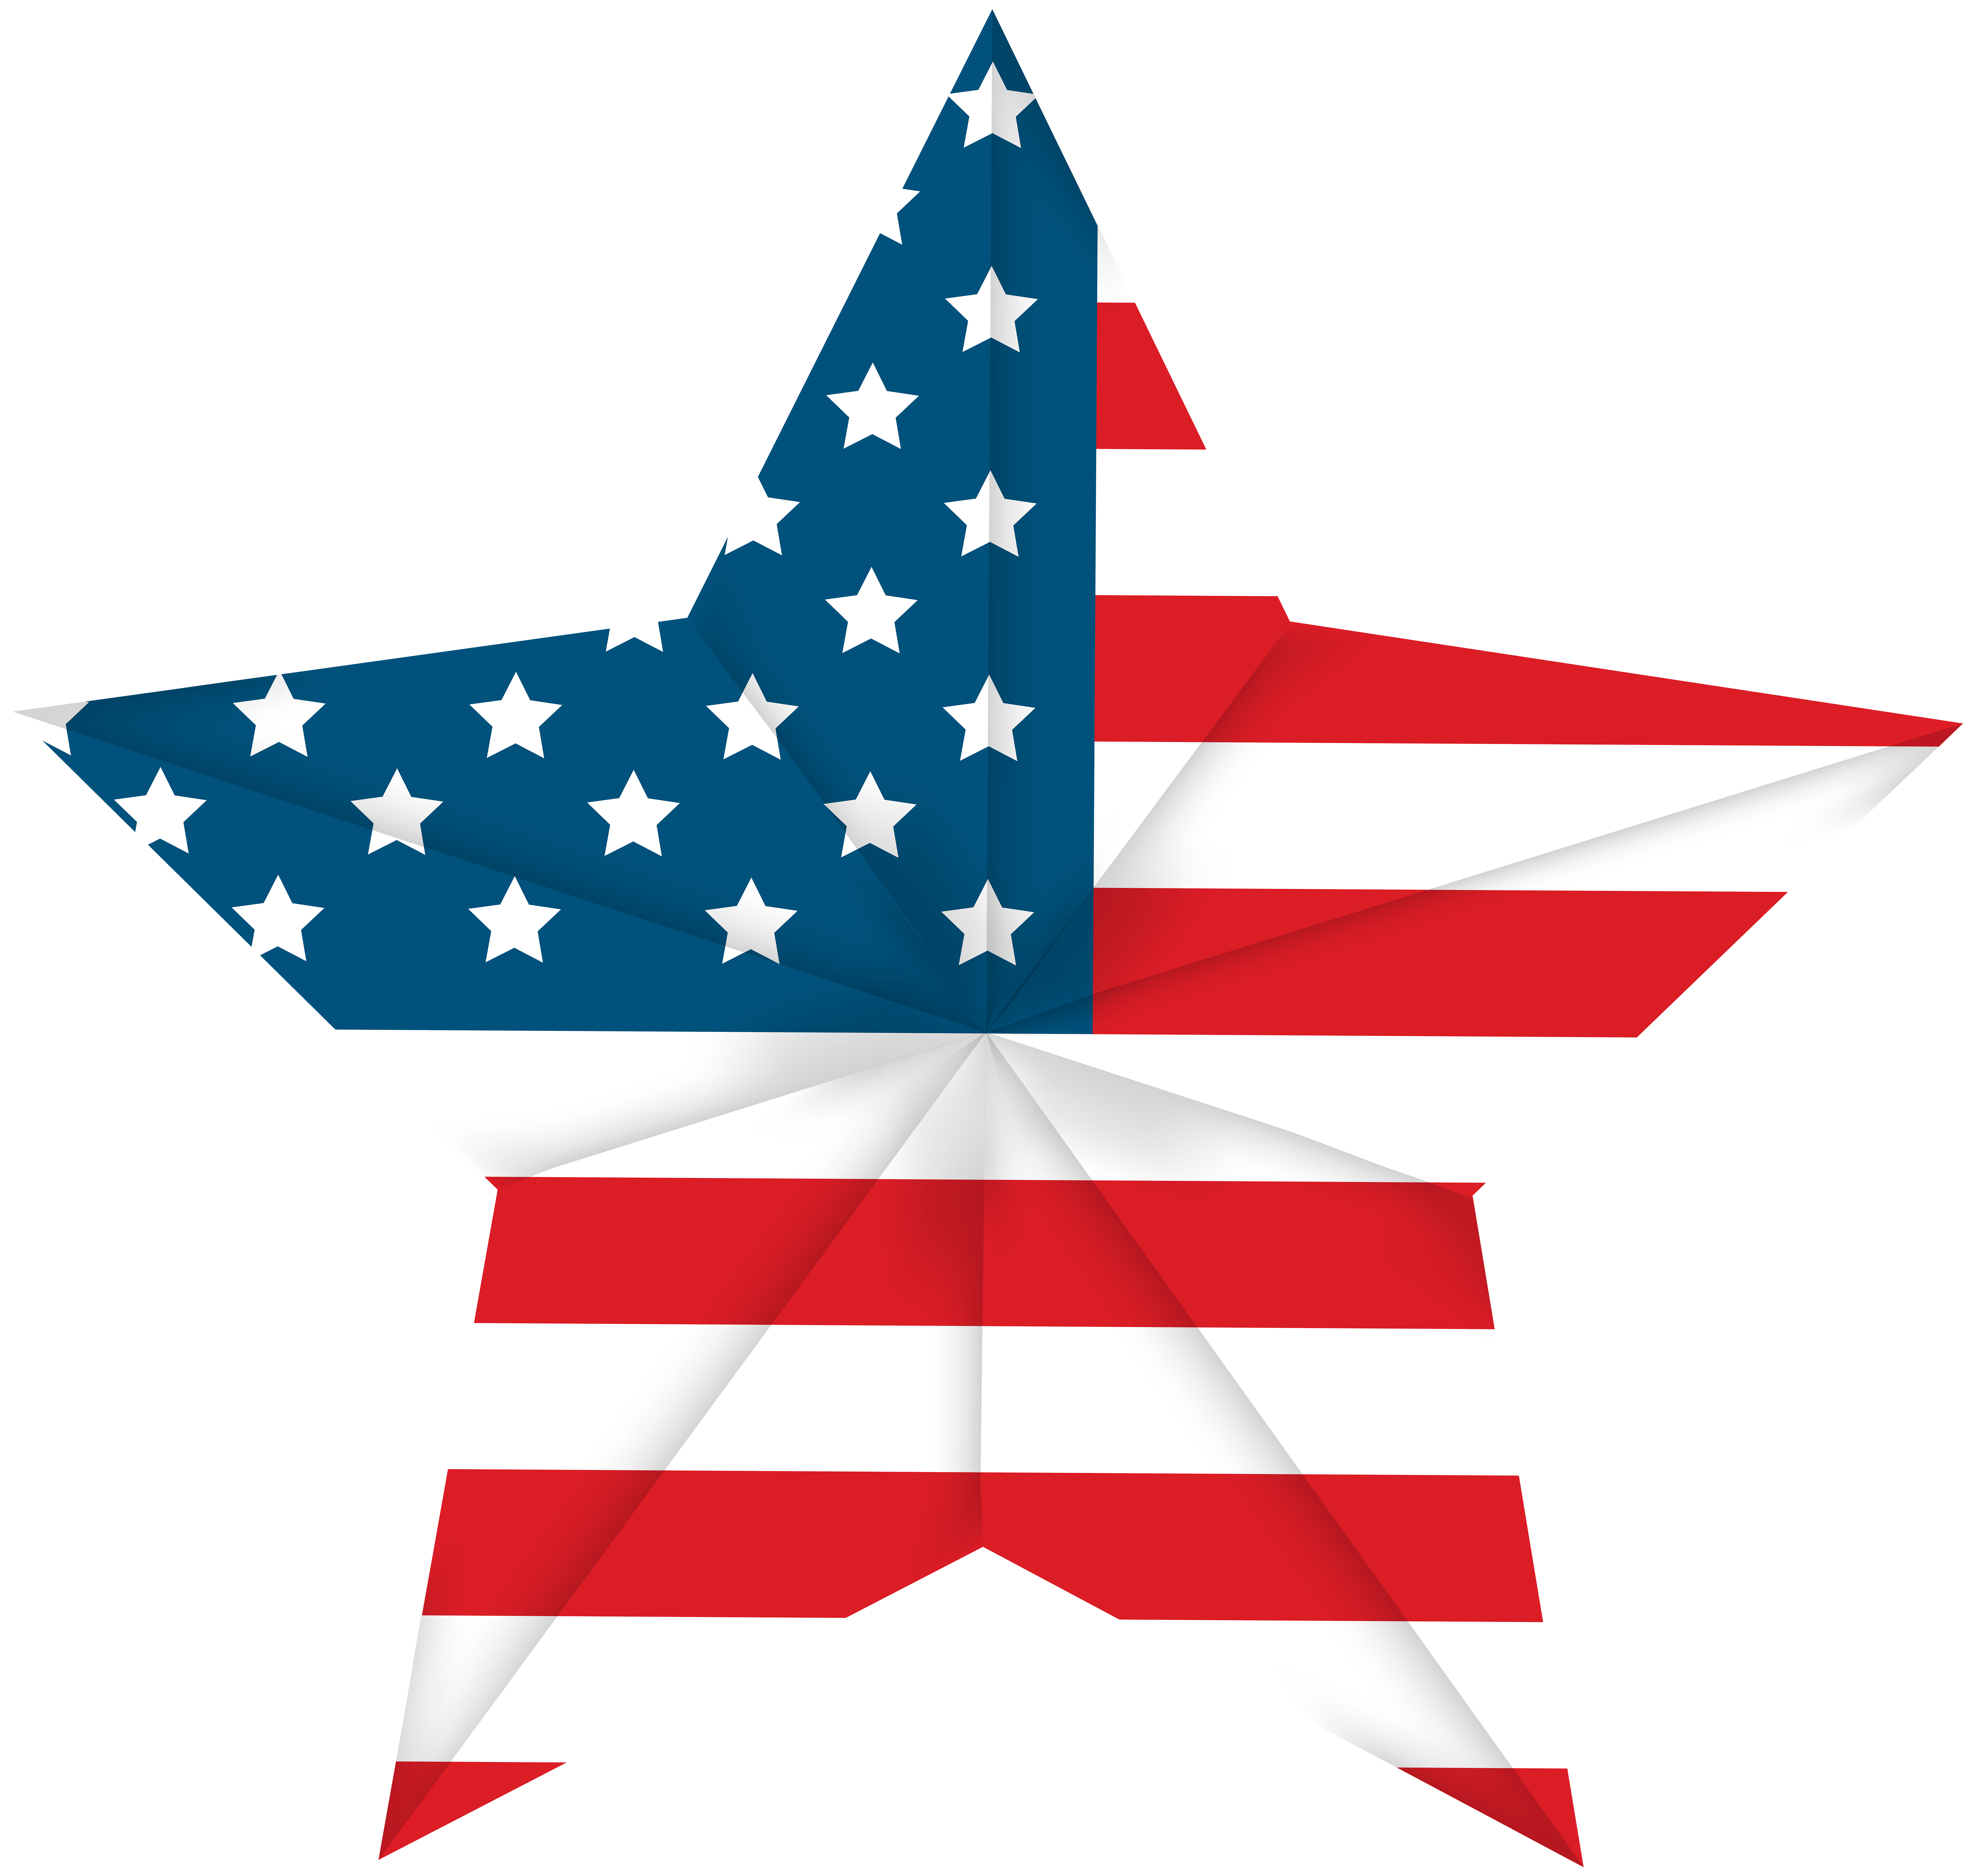 Flag at getdrawings com. Germany clipart usa